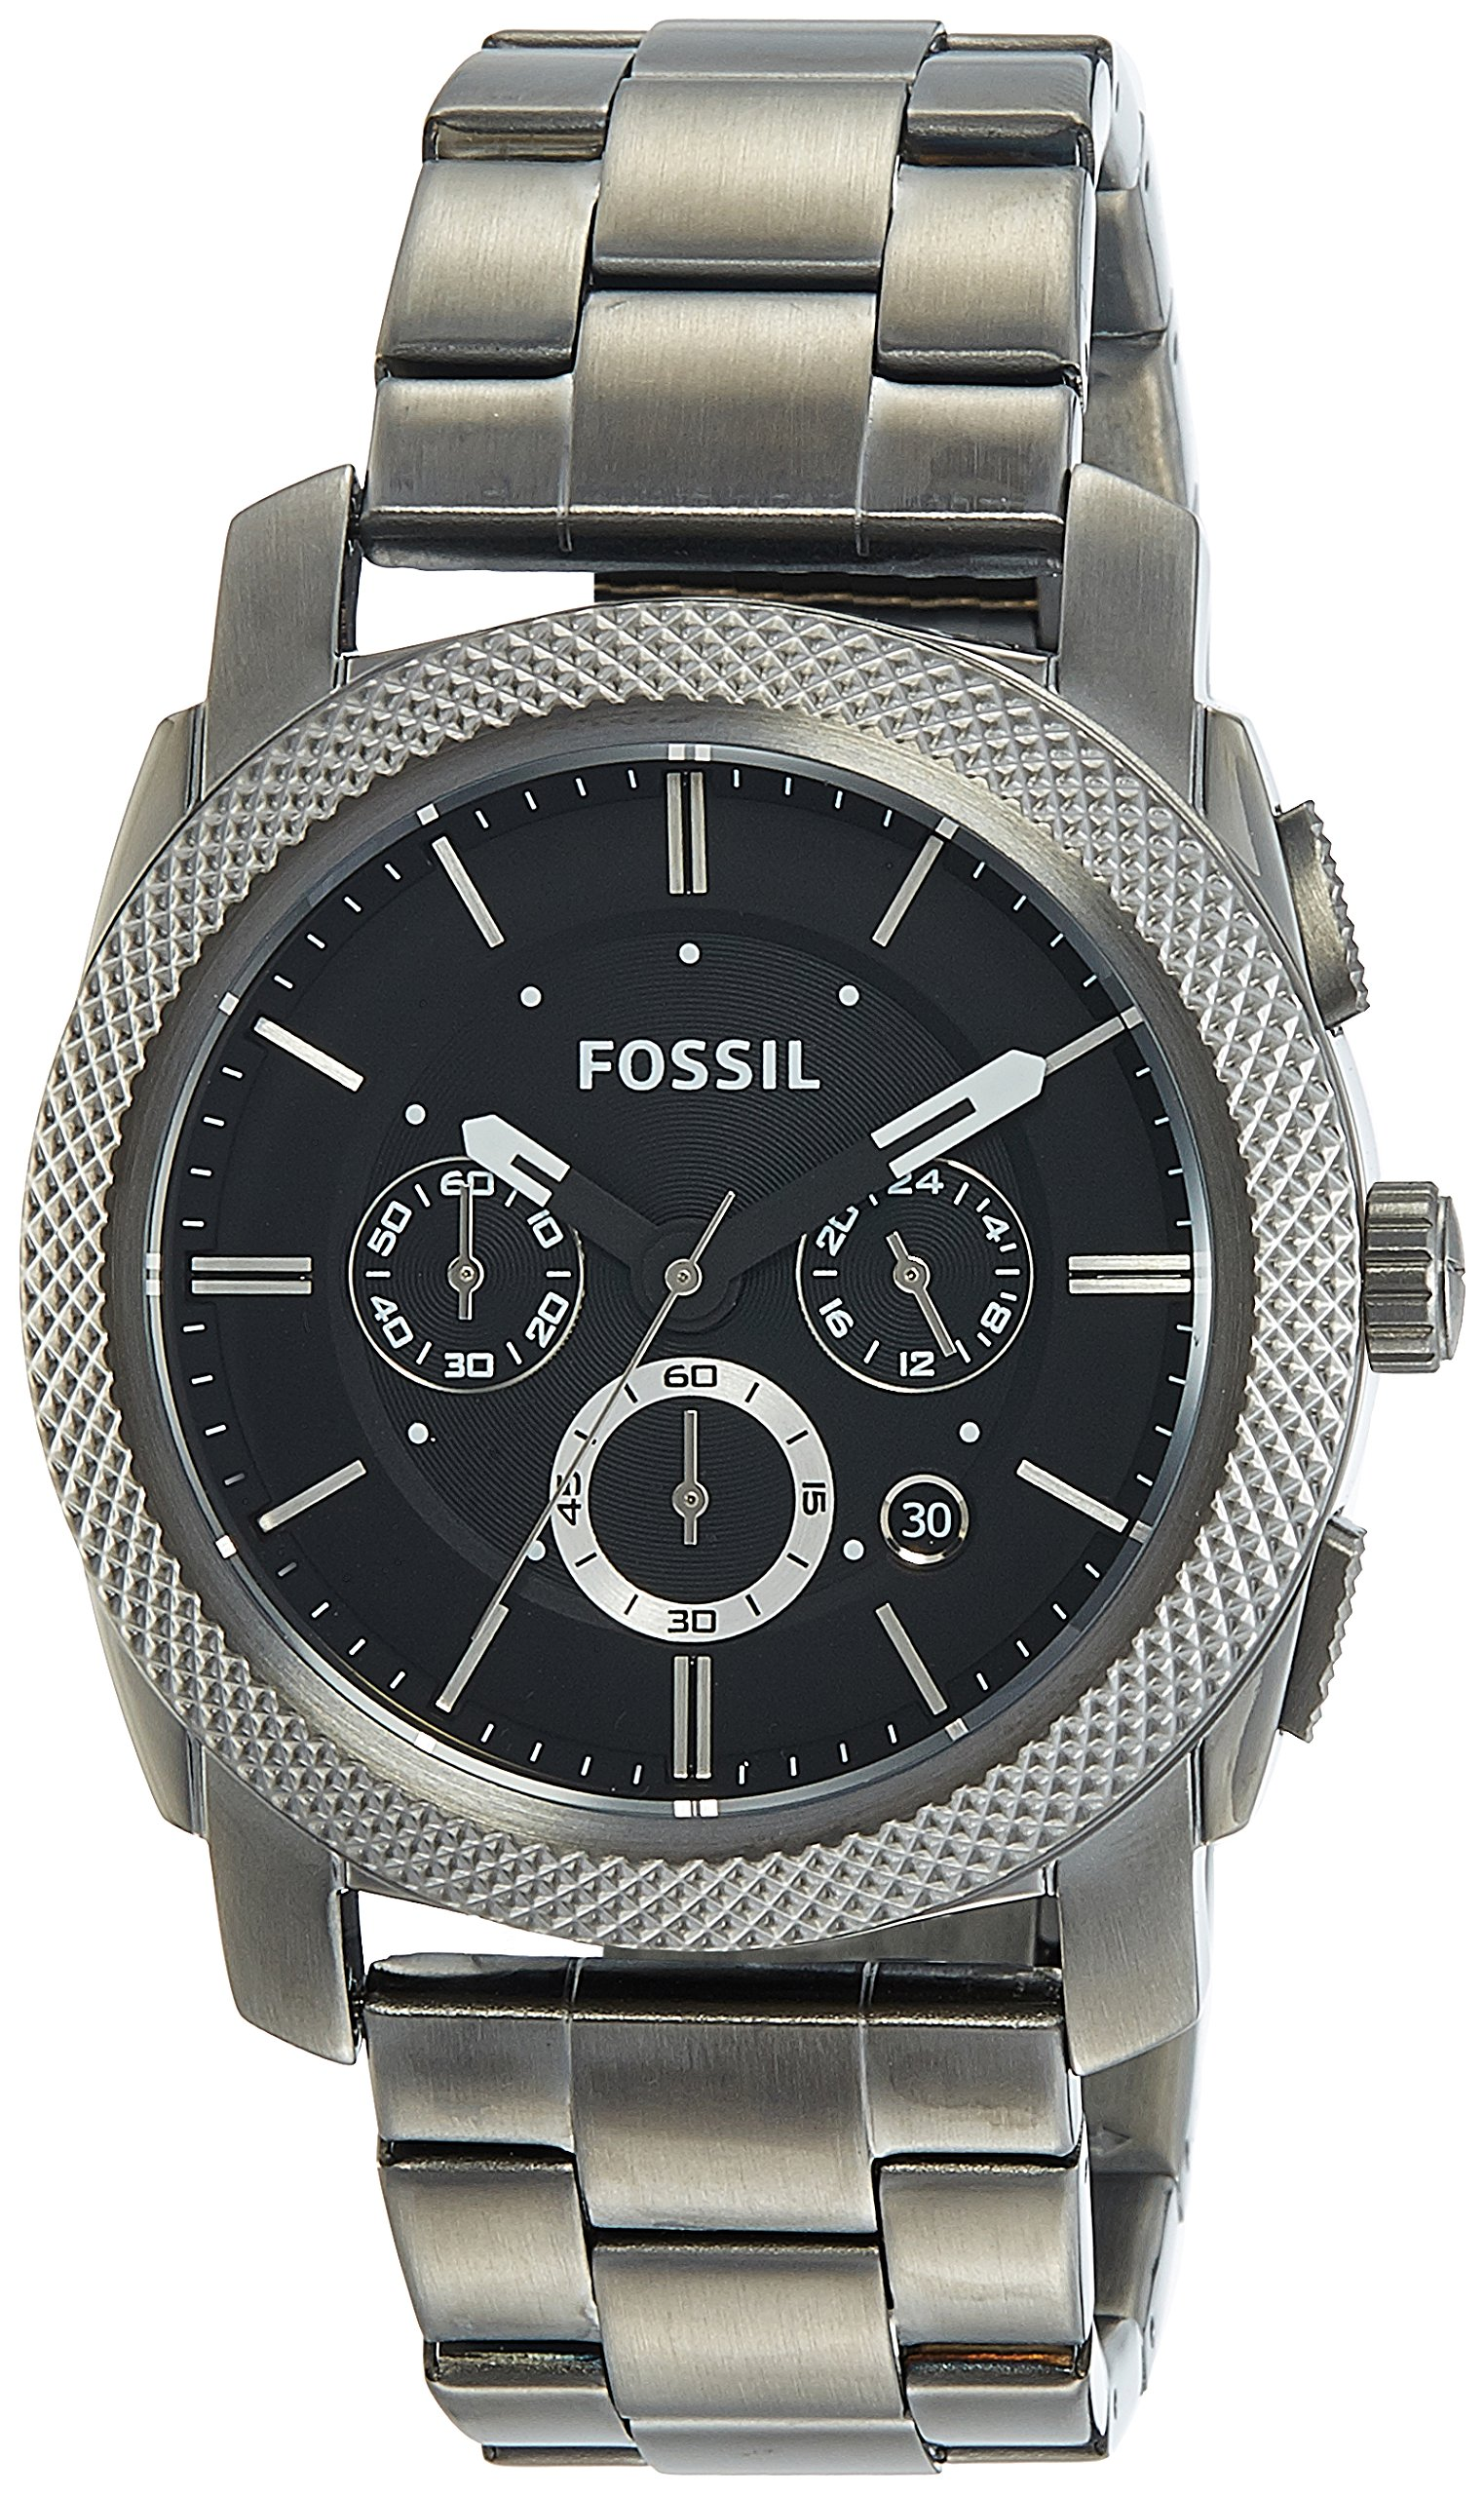 Fossil Men's FS4662 Machine Chronograph Stainless Steel Watch - Smoke by Fossil